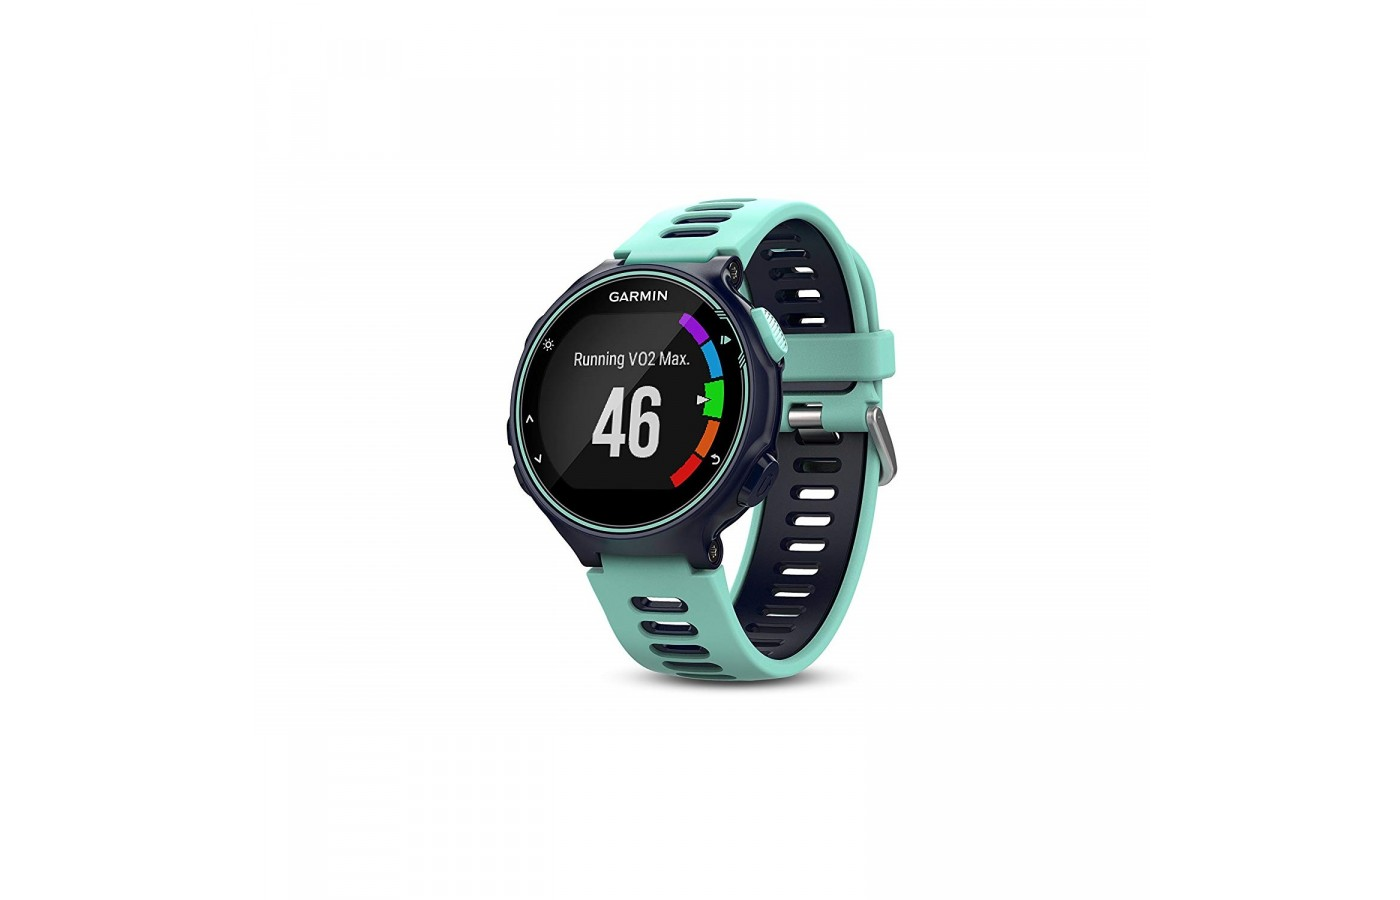 The Garmin Forerunner 735XT has a heart rate monitor for more accurate calorie burn and sleep monitoring.